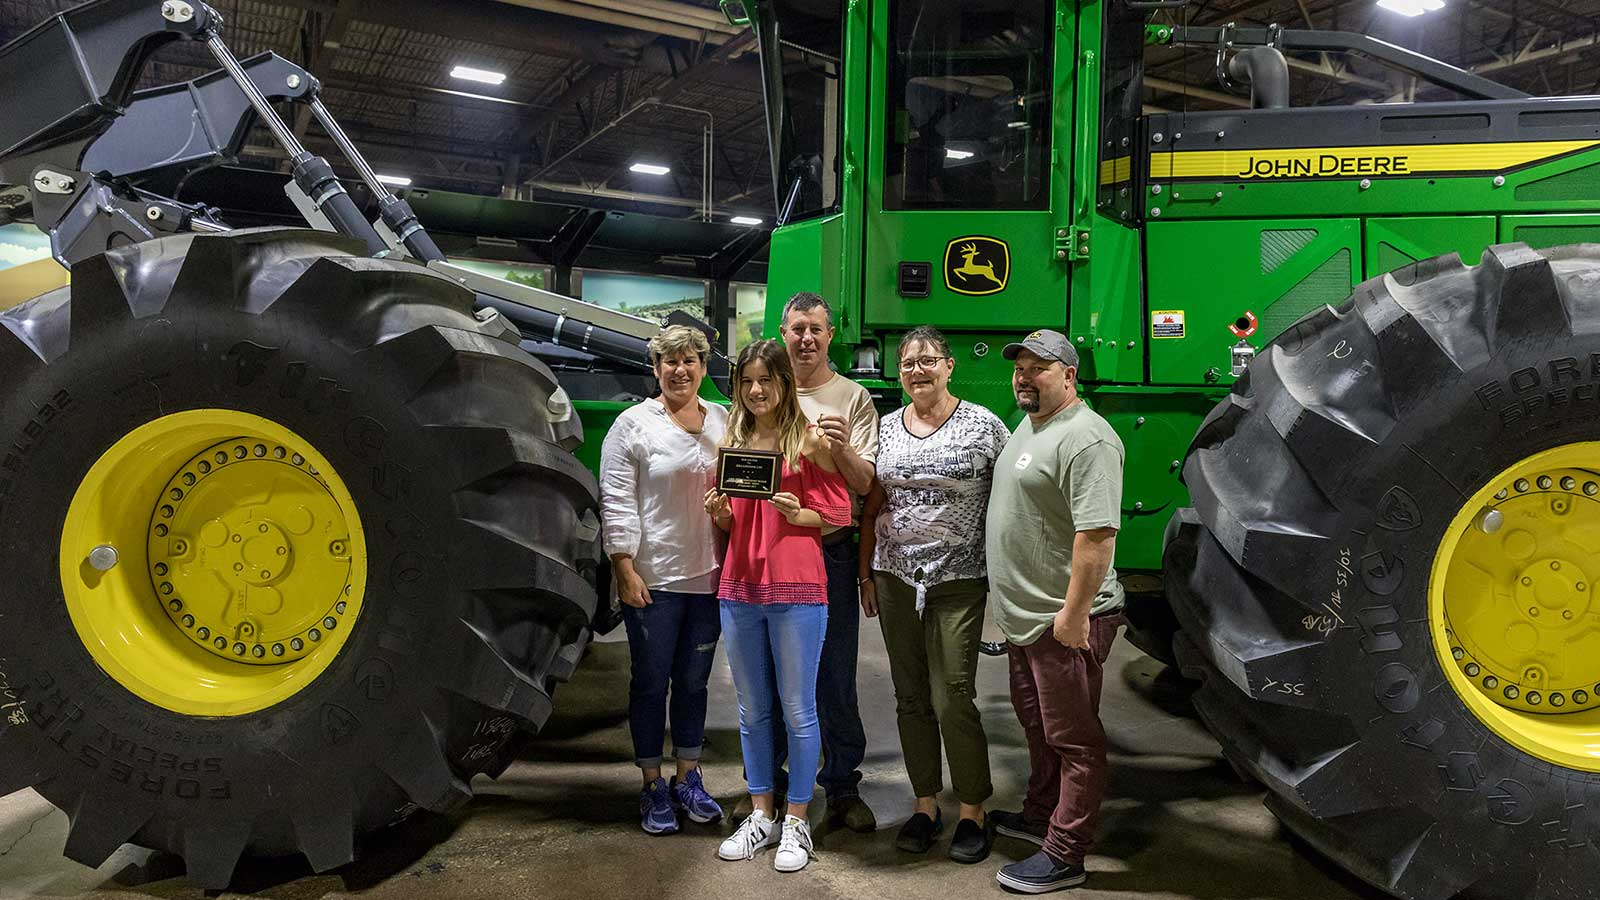 Ferguson and his family line up for pictures next to their new 848L Skidder as it comes off the factory line.